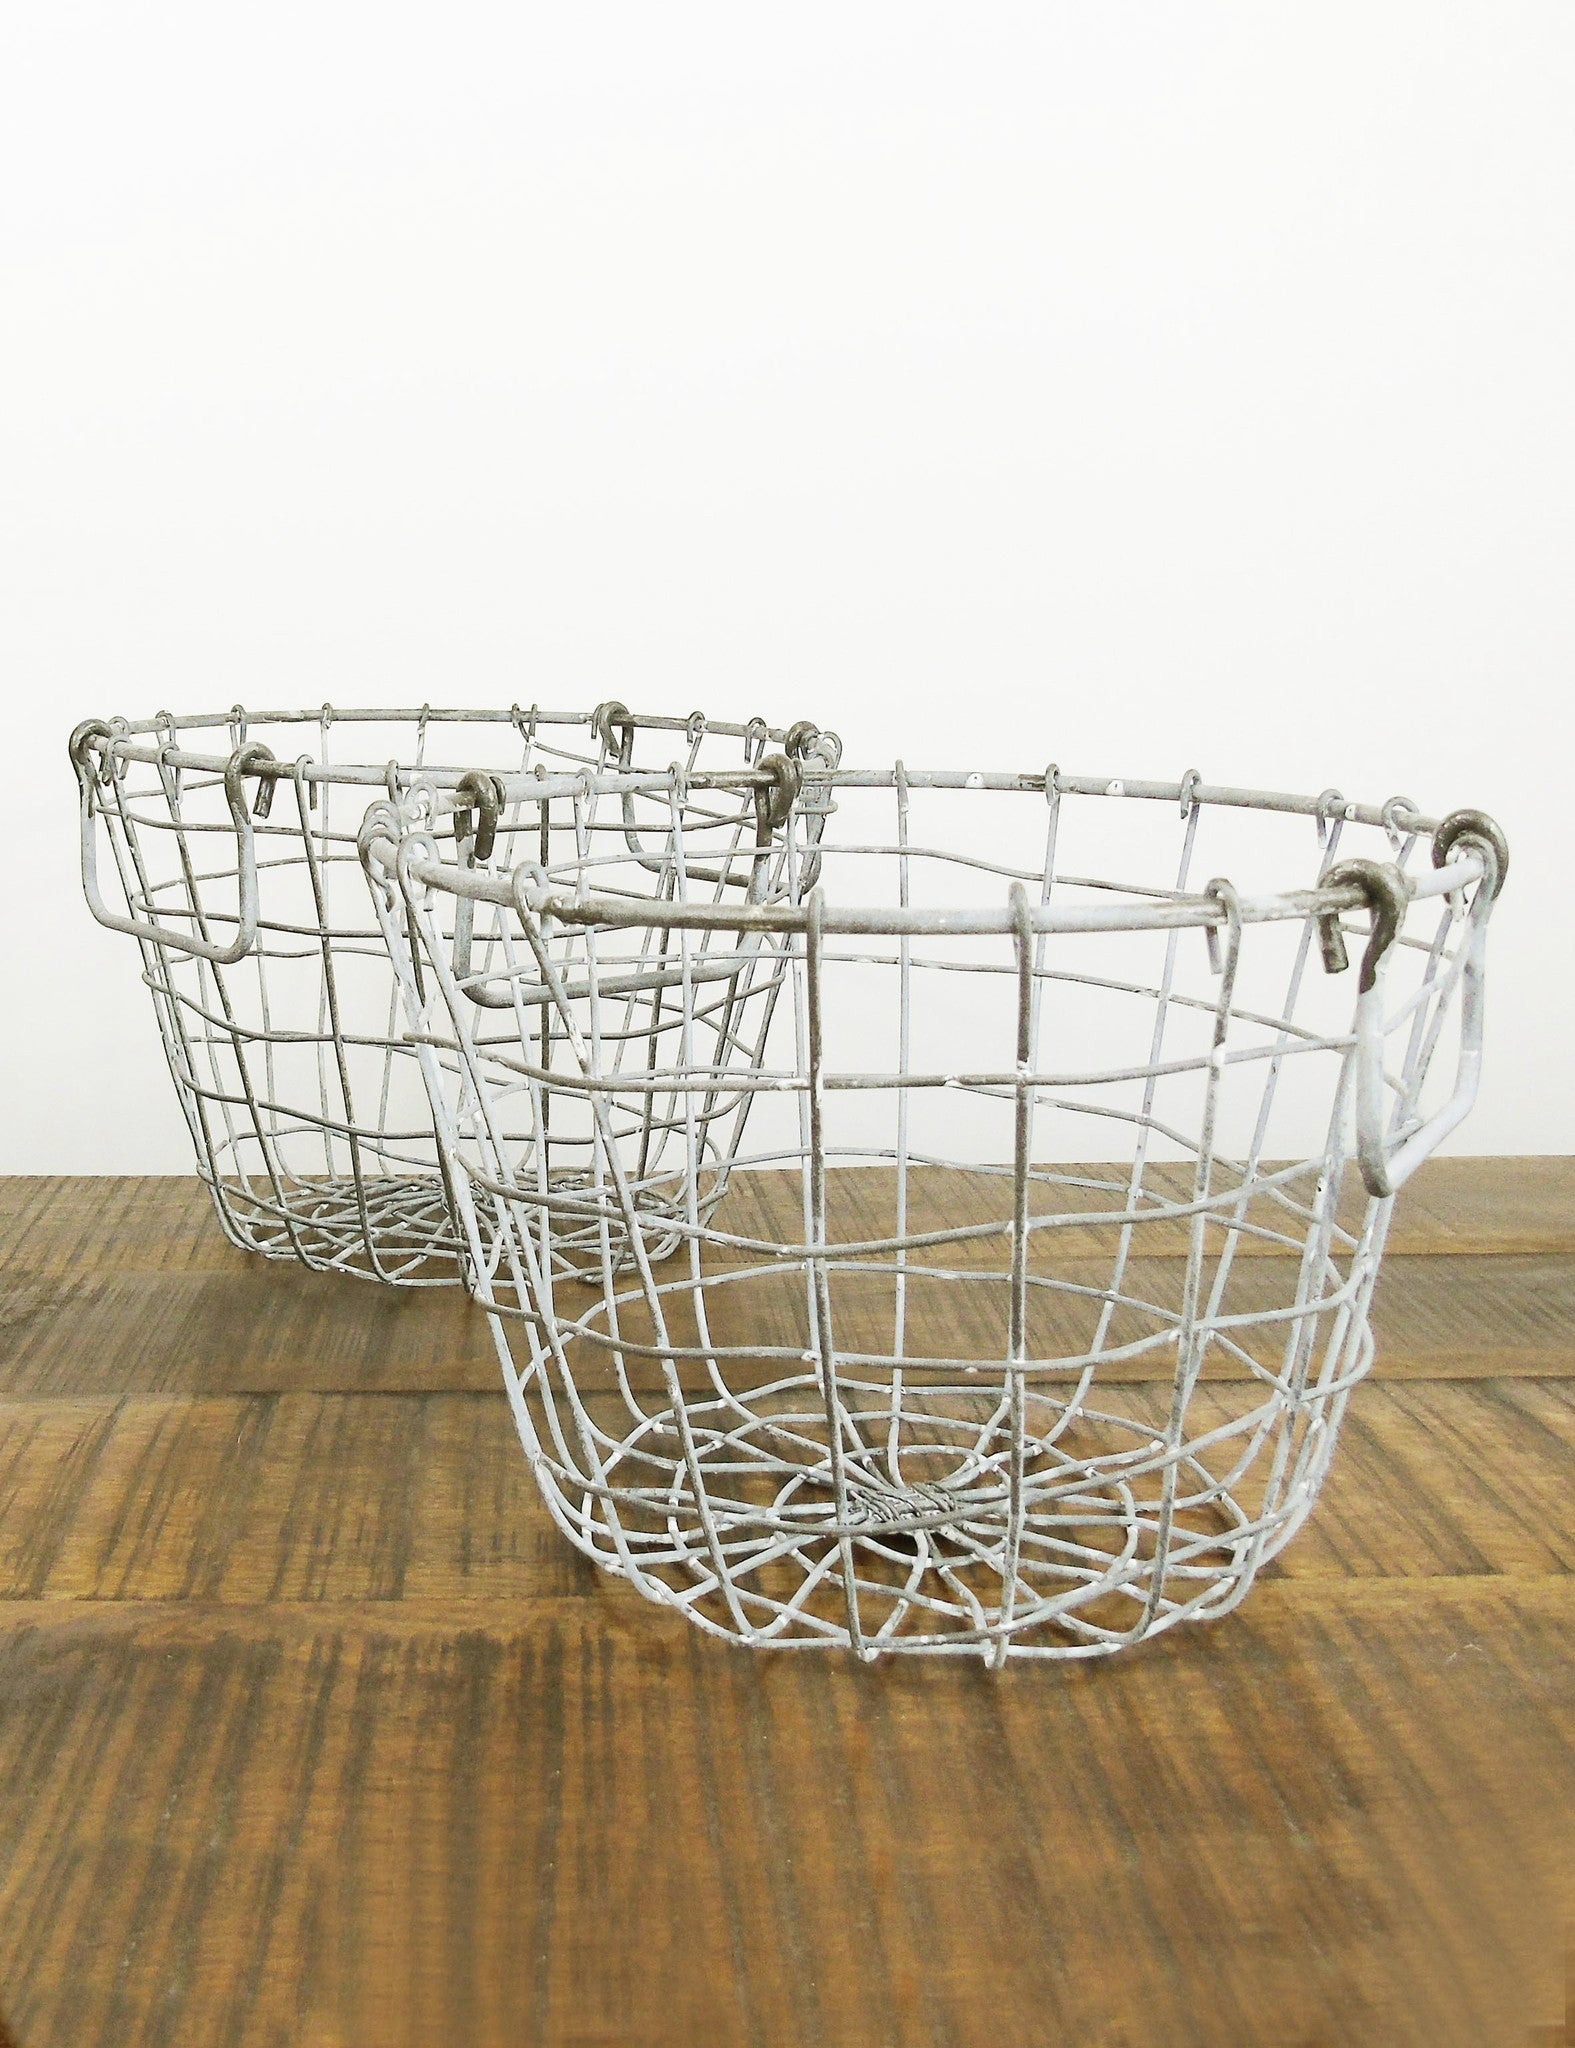 Rustic Wire Basket - The Den & Now